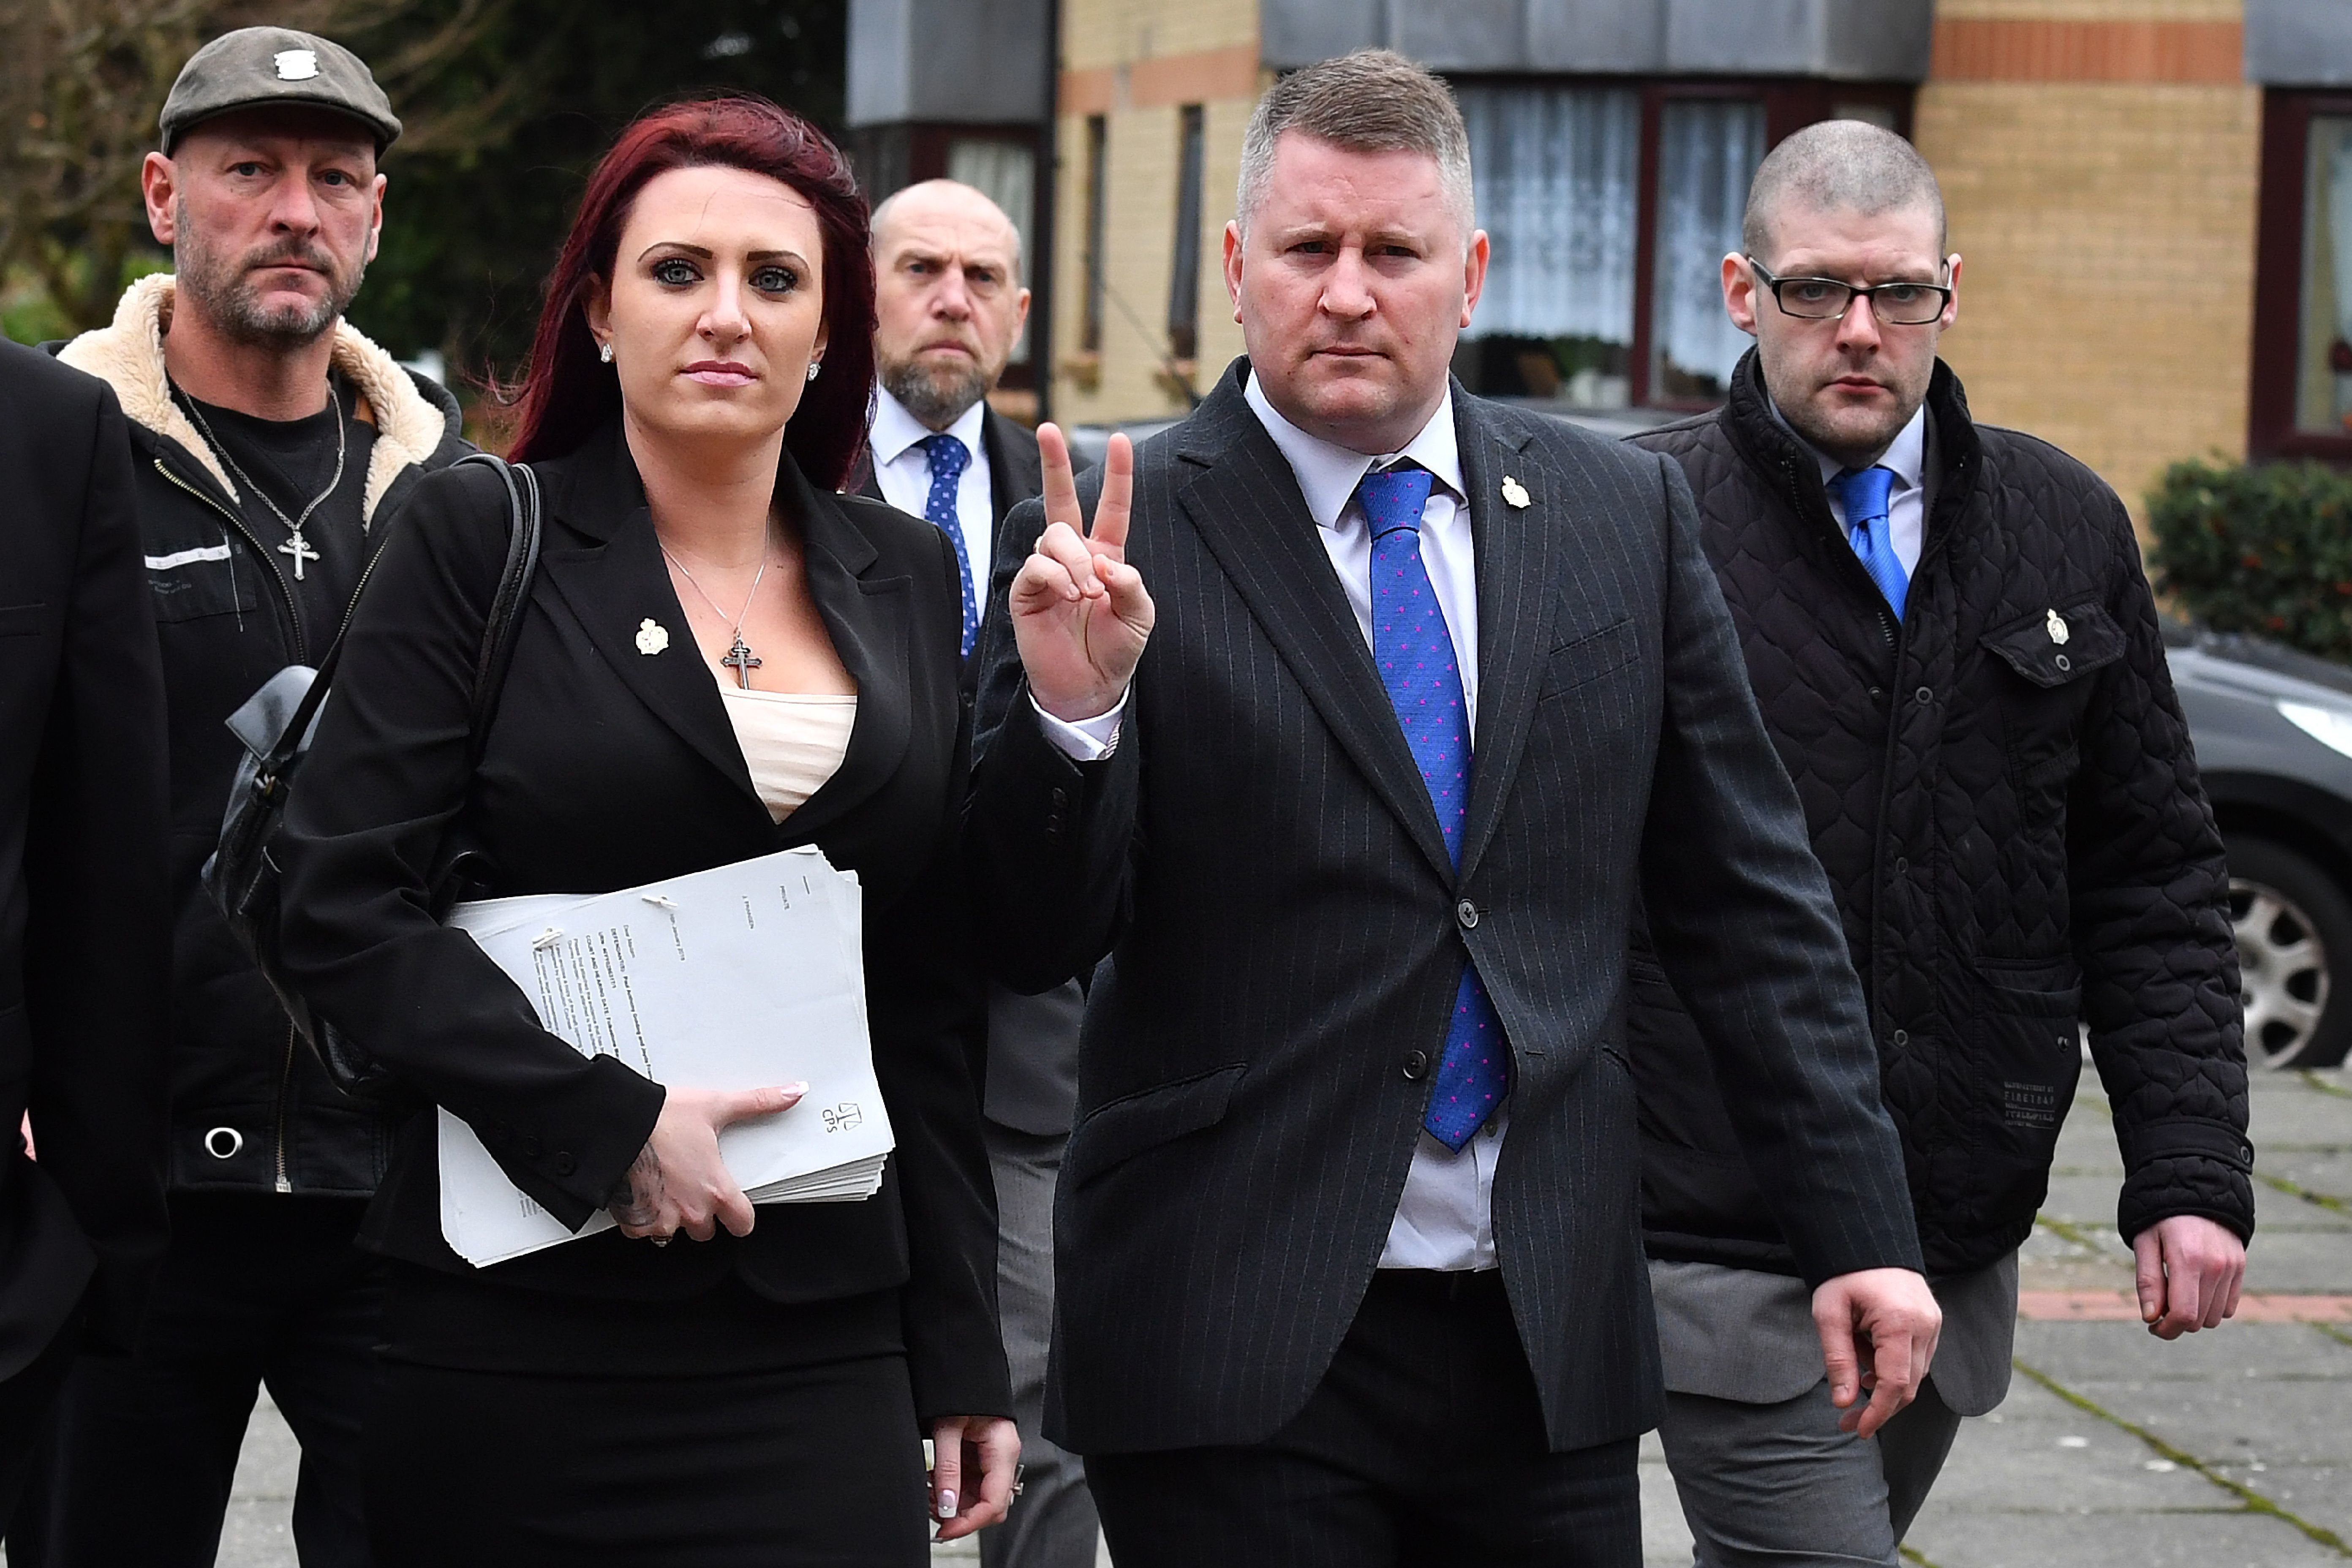 Far-right group Britain First leader Paul Golding (R) and deputy Jayda Fransen arrive at Folkestone magristrates court in Kent on January 29, 2018. They stand accused of causing religiously aggravated harassment.  / AFP PHOTO / BEN STANSALL        (Photo credit should read BEN STANSALL/AFP/Getty Images)